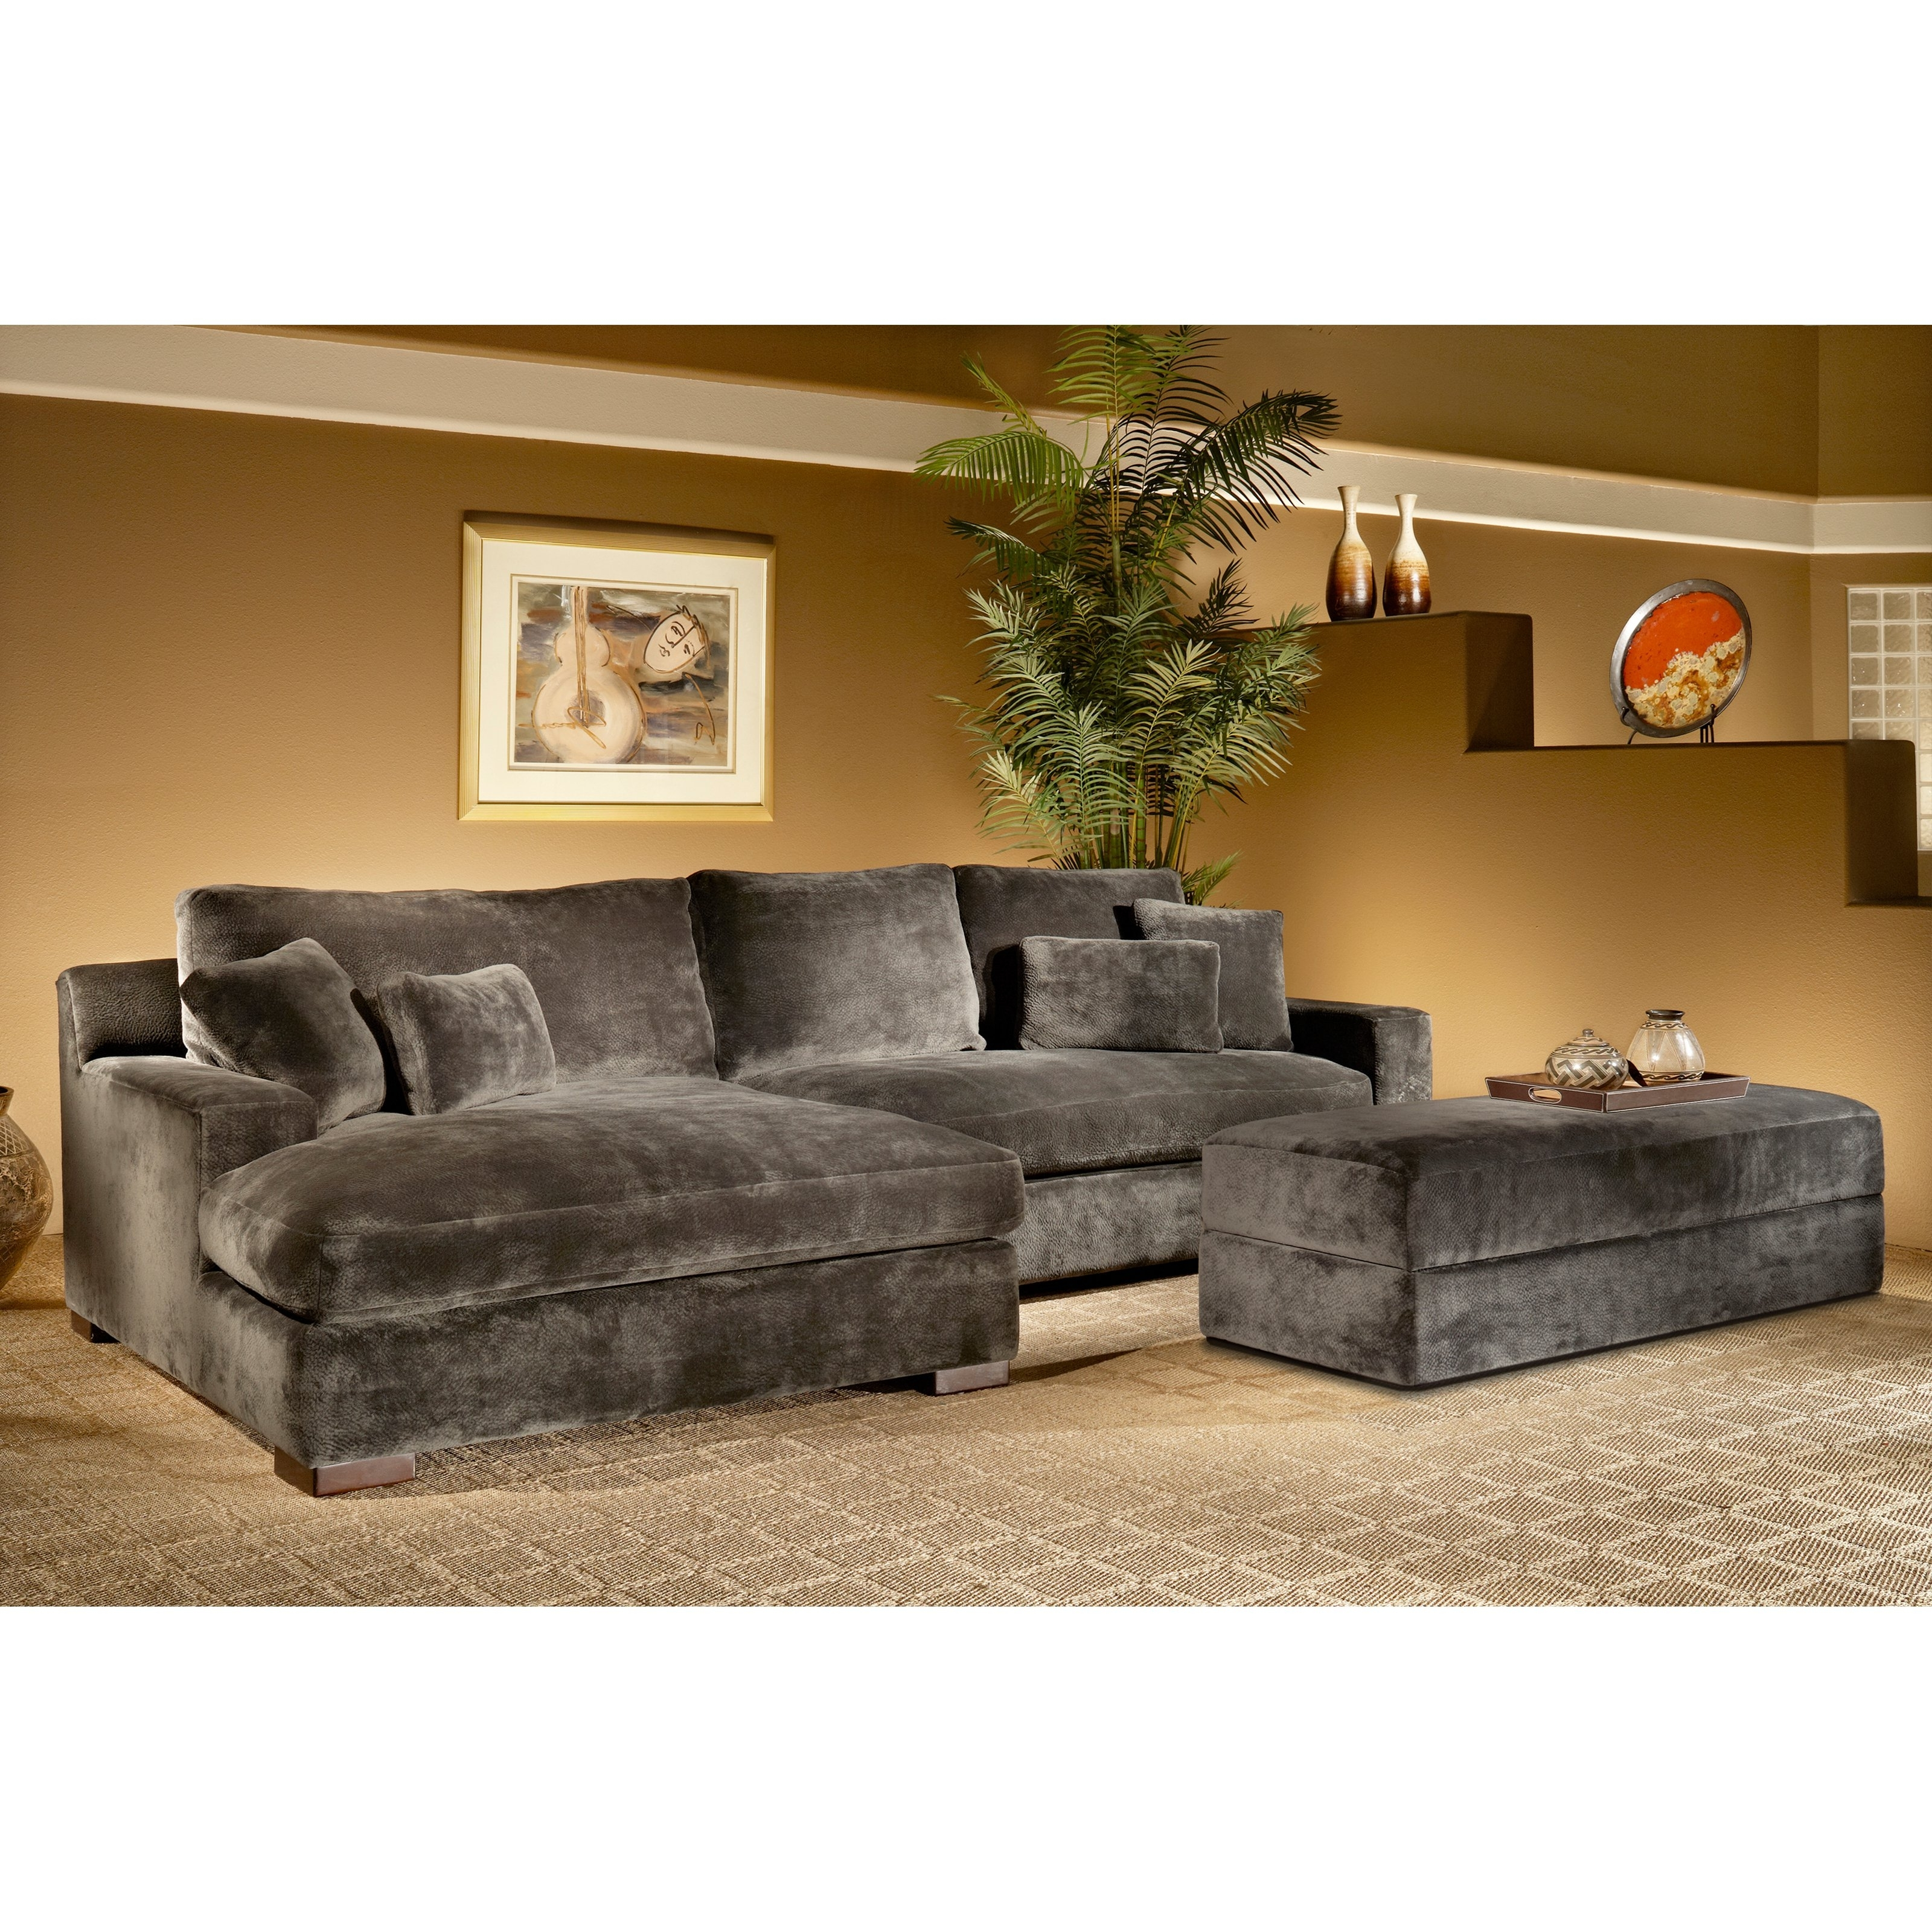 Transitional Sectional Comfy Amp Stylish Home Decor T For Malbry Point 3 Piece Sectionals With Laf Chaise (View 24 of 25)